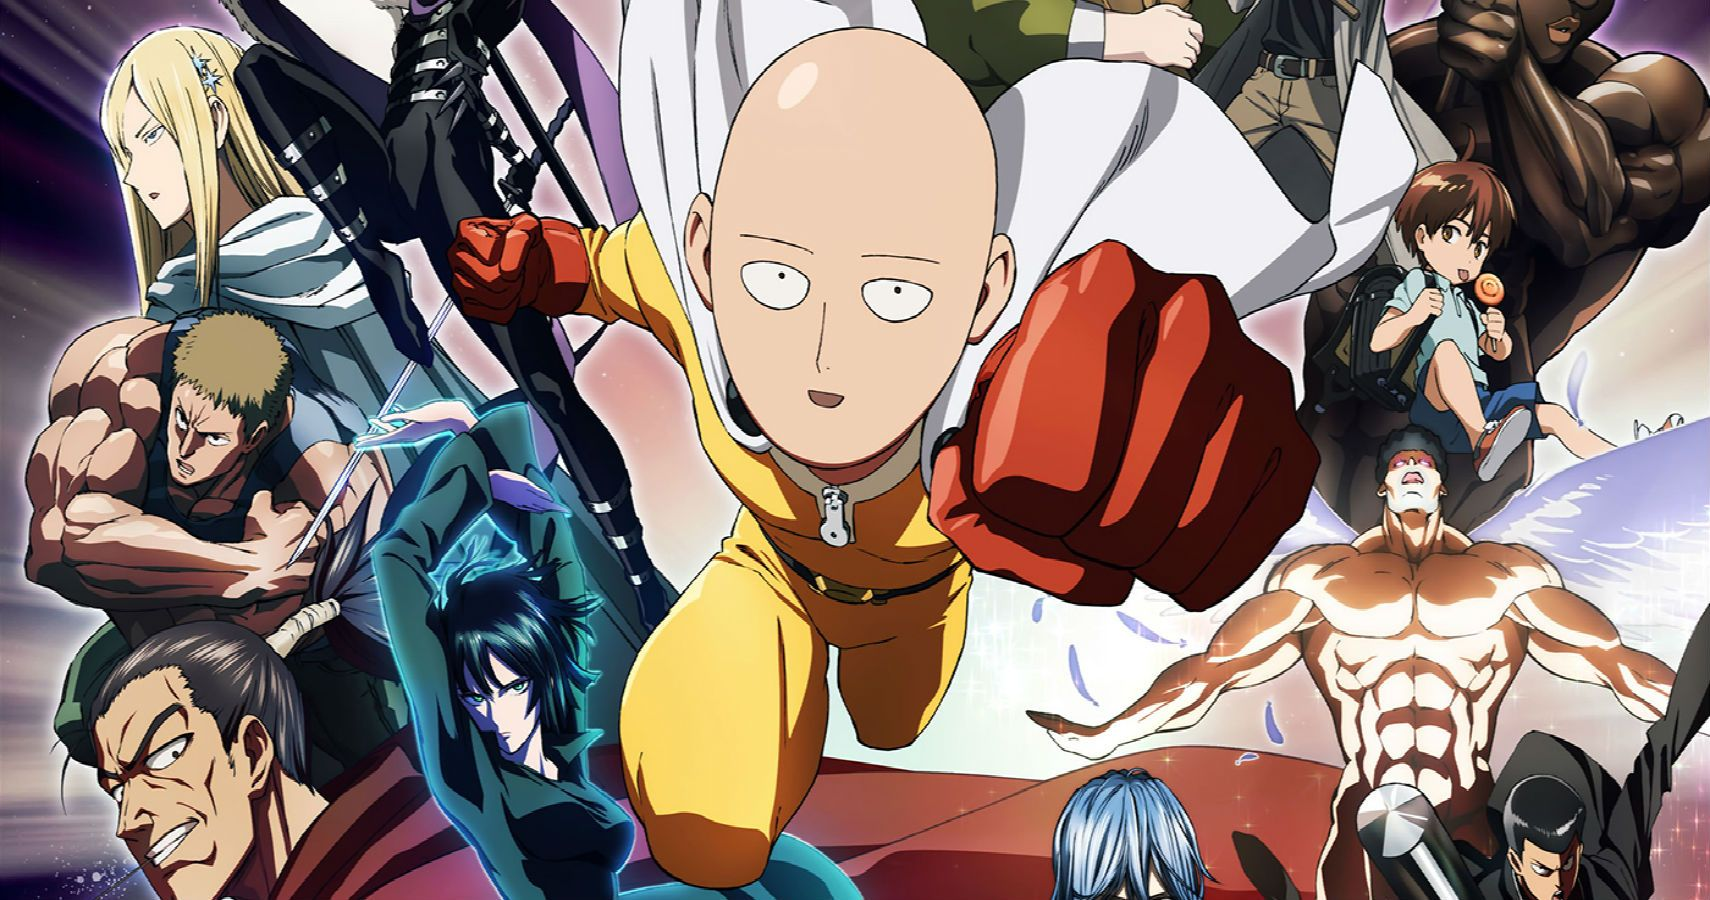 One-Punch Man: 5 Heroes & 5 Villains Ranked By Power